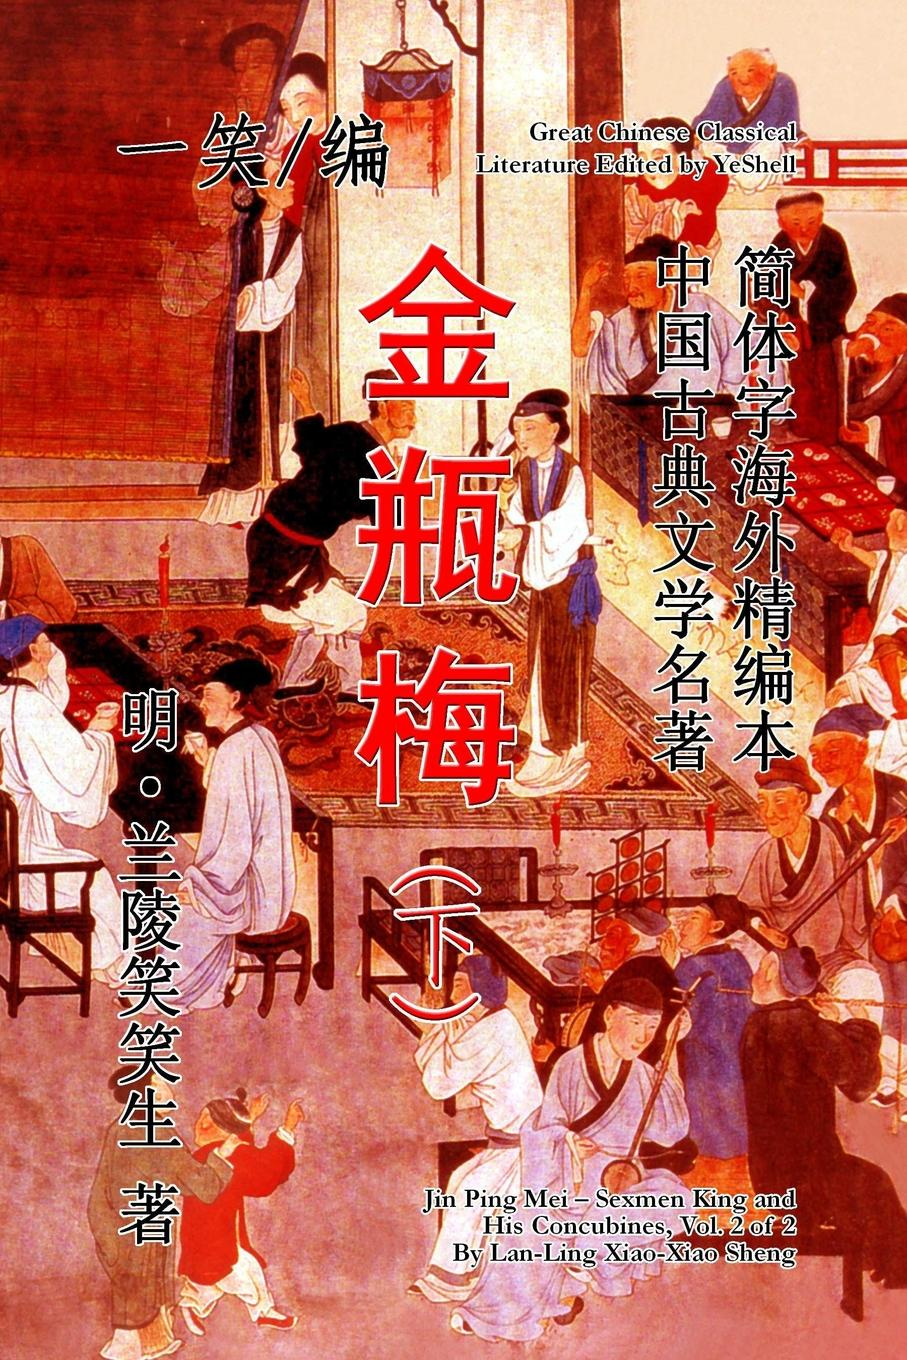 YeShell Sexmen King and His Concubines (Jin Ping Mei), Vol. 2 of 2 цена